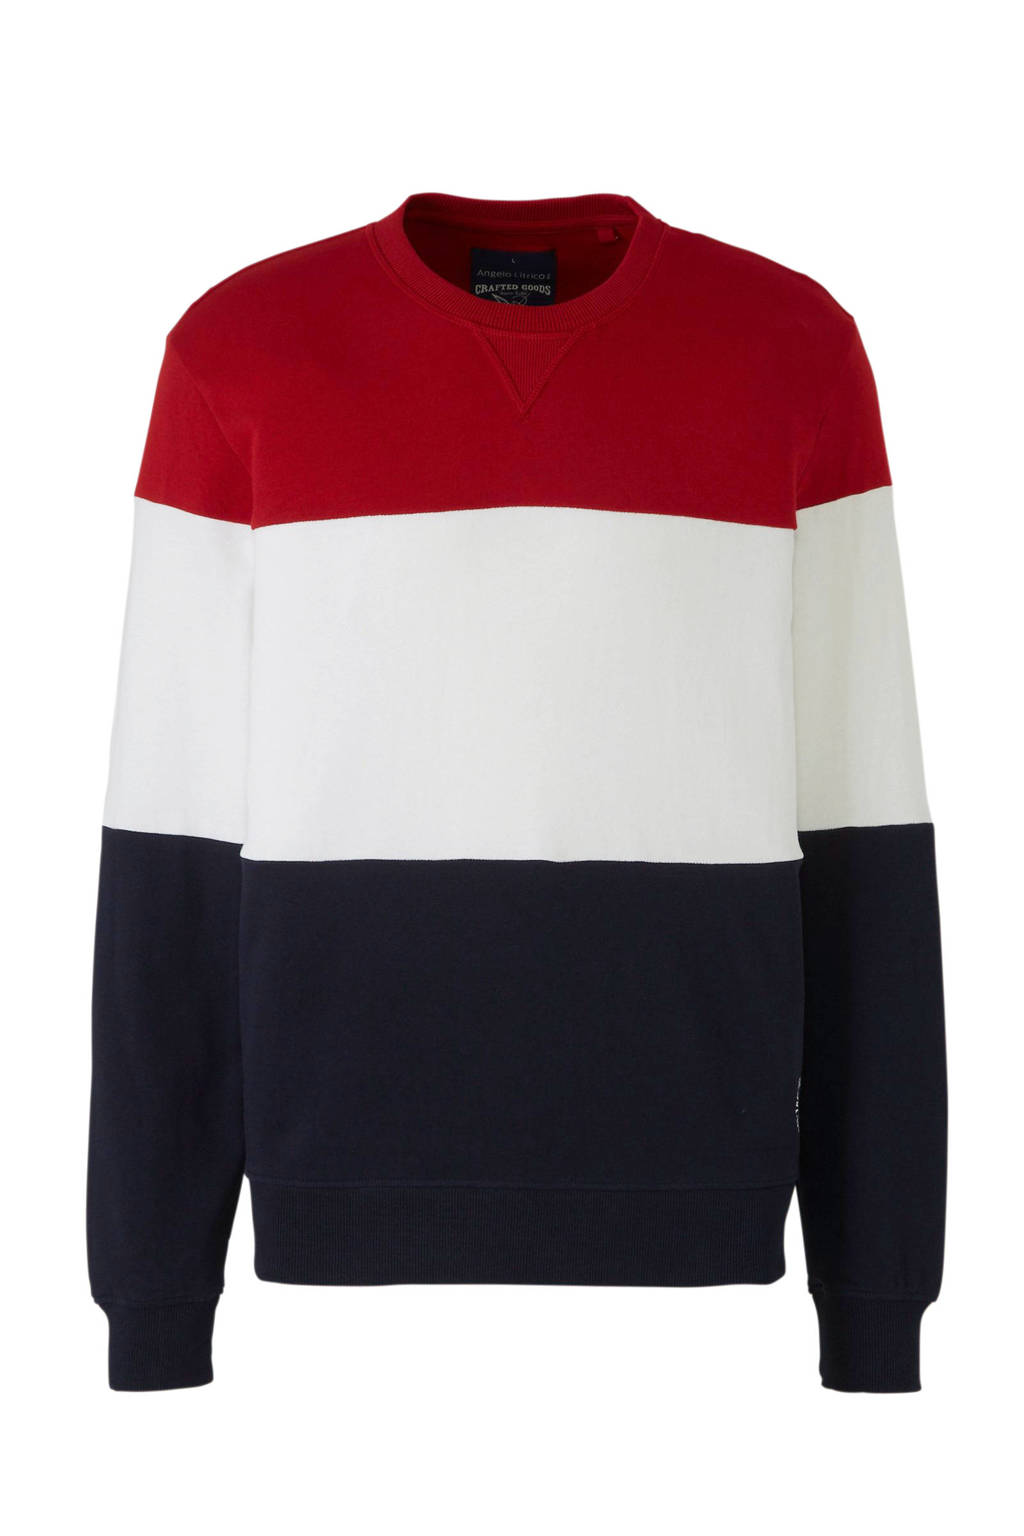 C&A Angelo Litrico sweater met strepen, Rood/wit/blauw